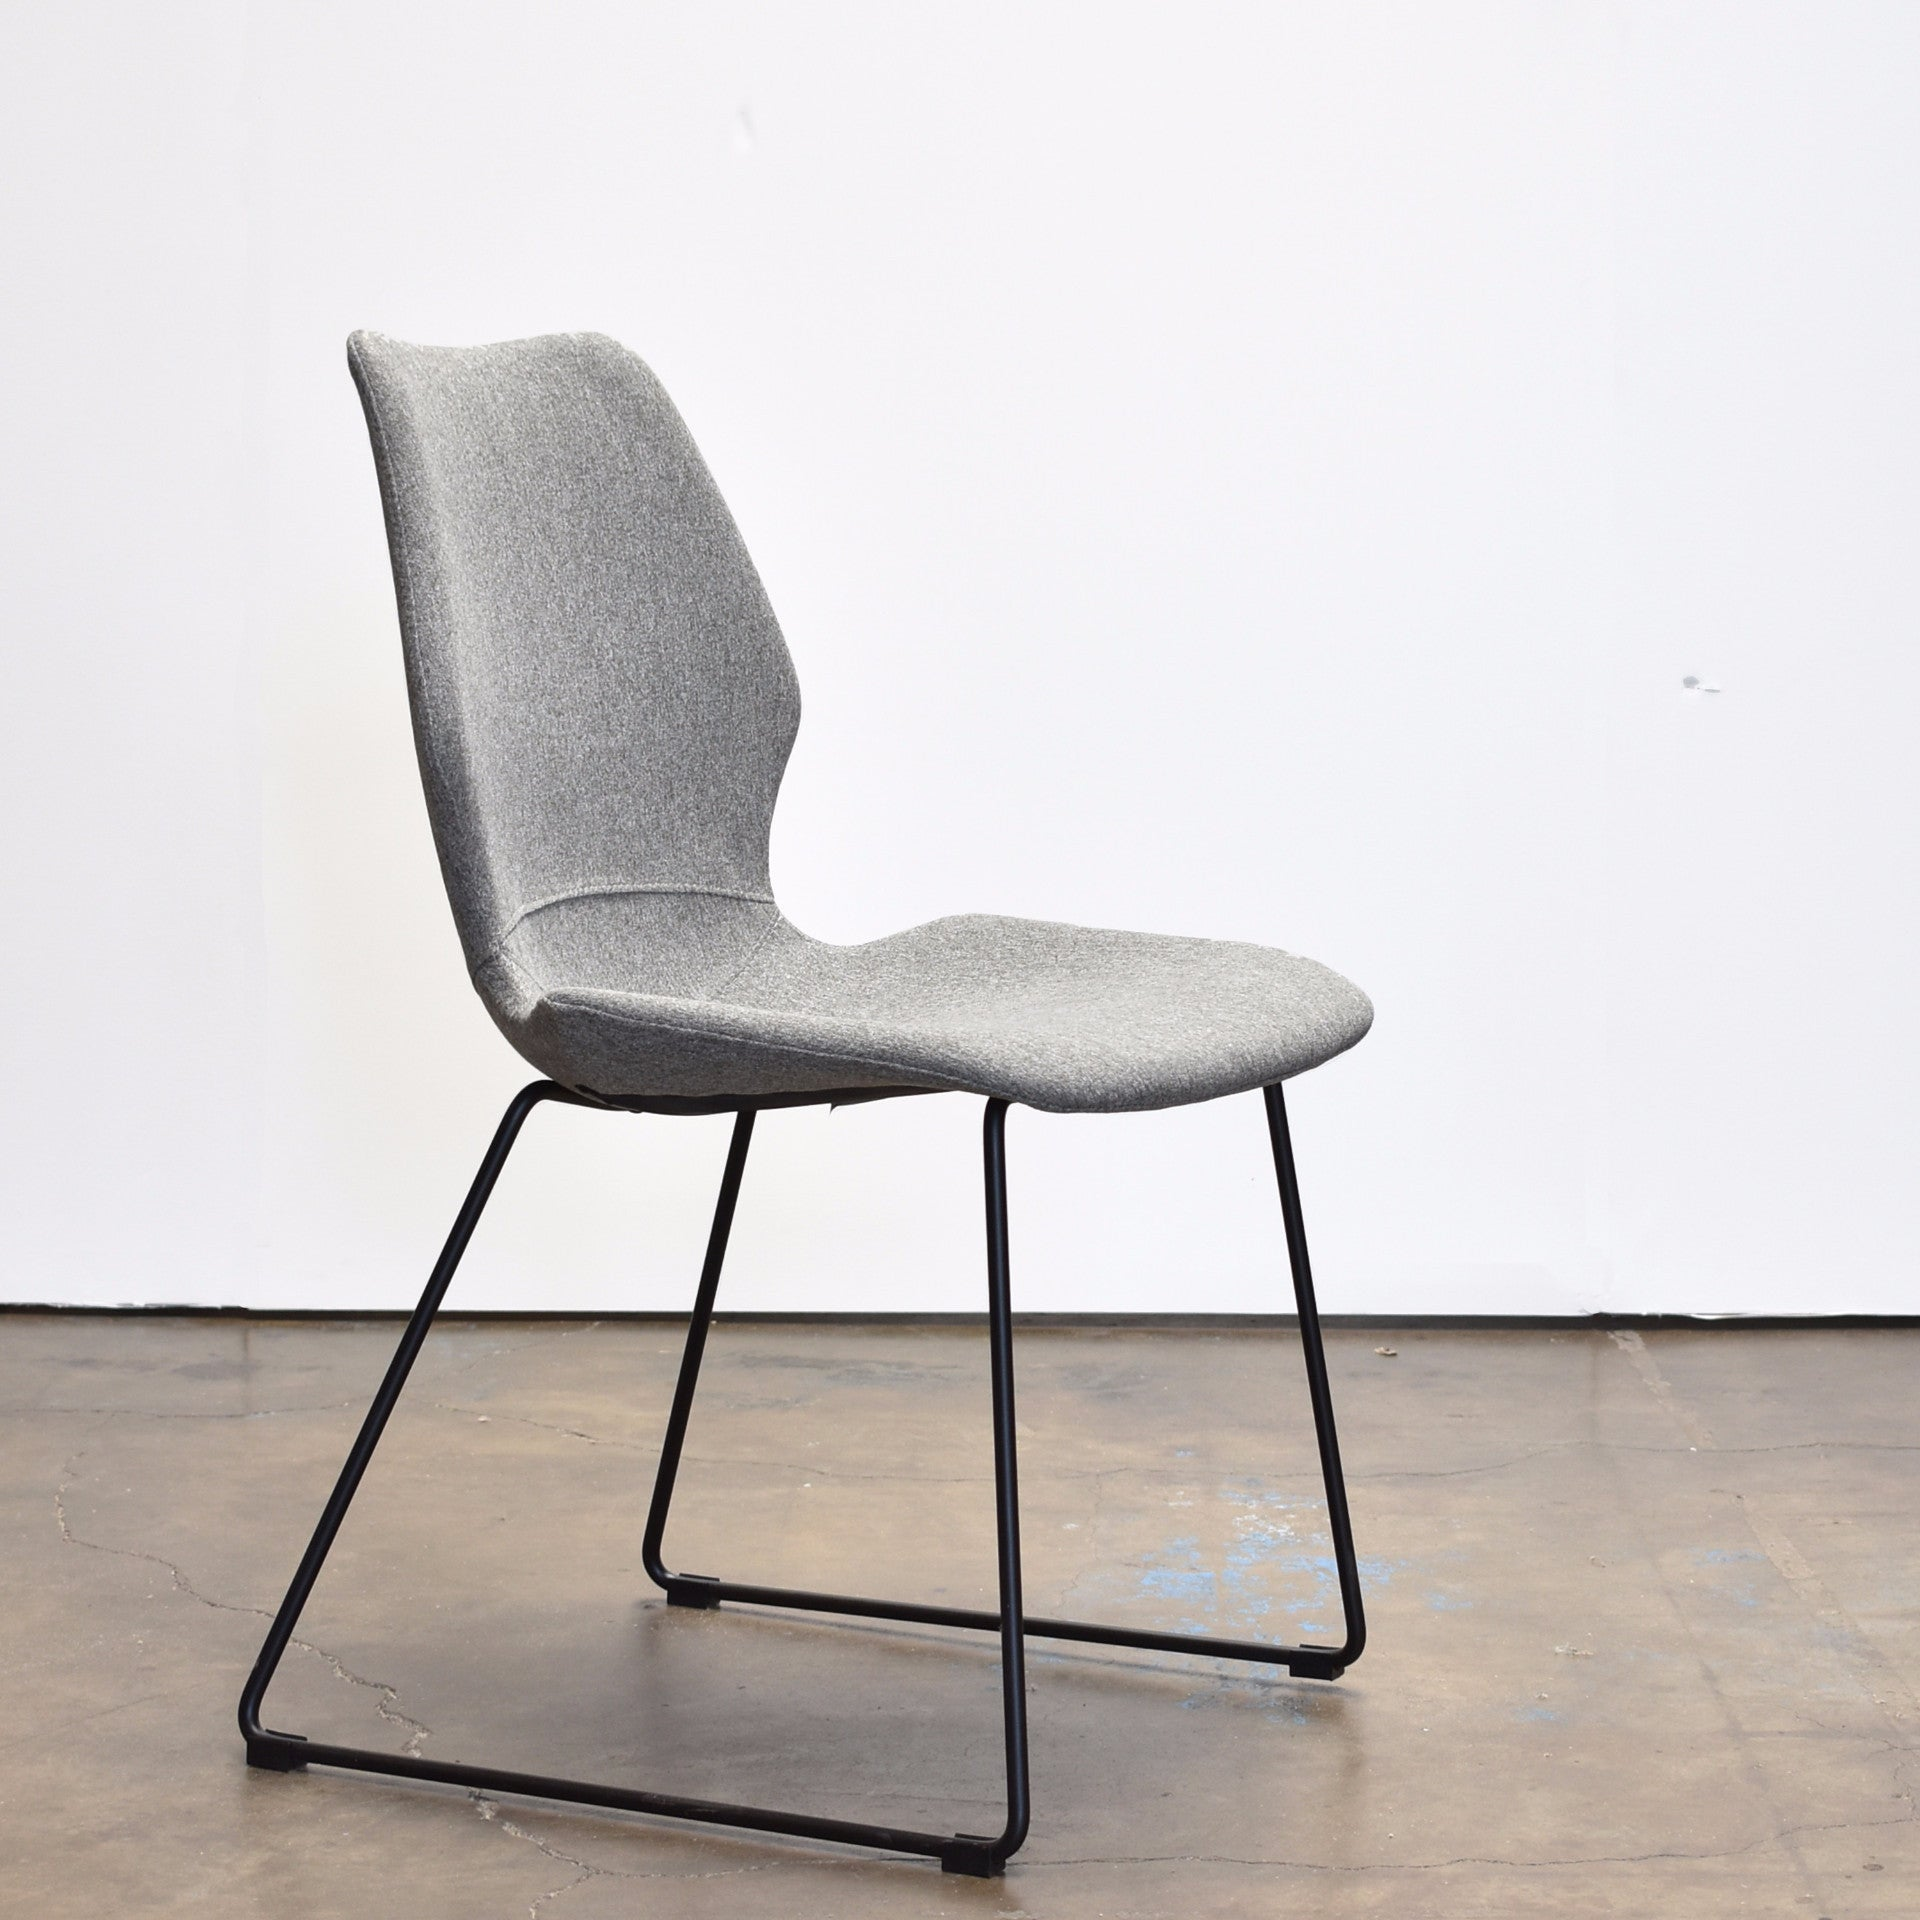 Miraculous Nina Modern Dining Chair Light Grey Fabric Black Base Andrewgaddart Wooden Chair Designs For Living Room Andrewgaddartcom